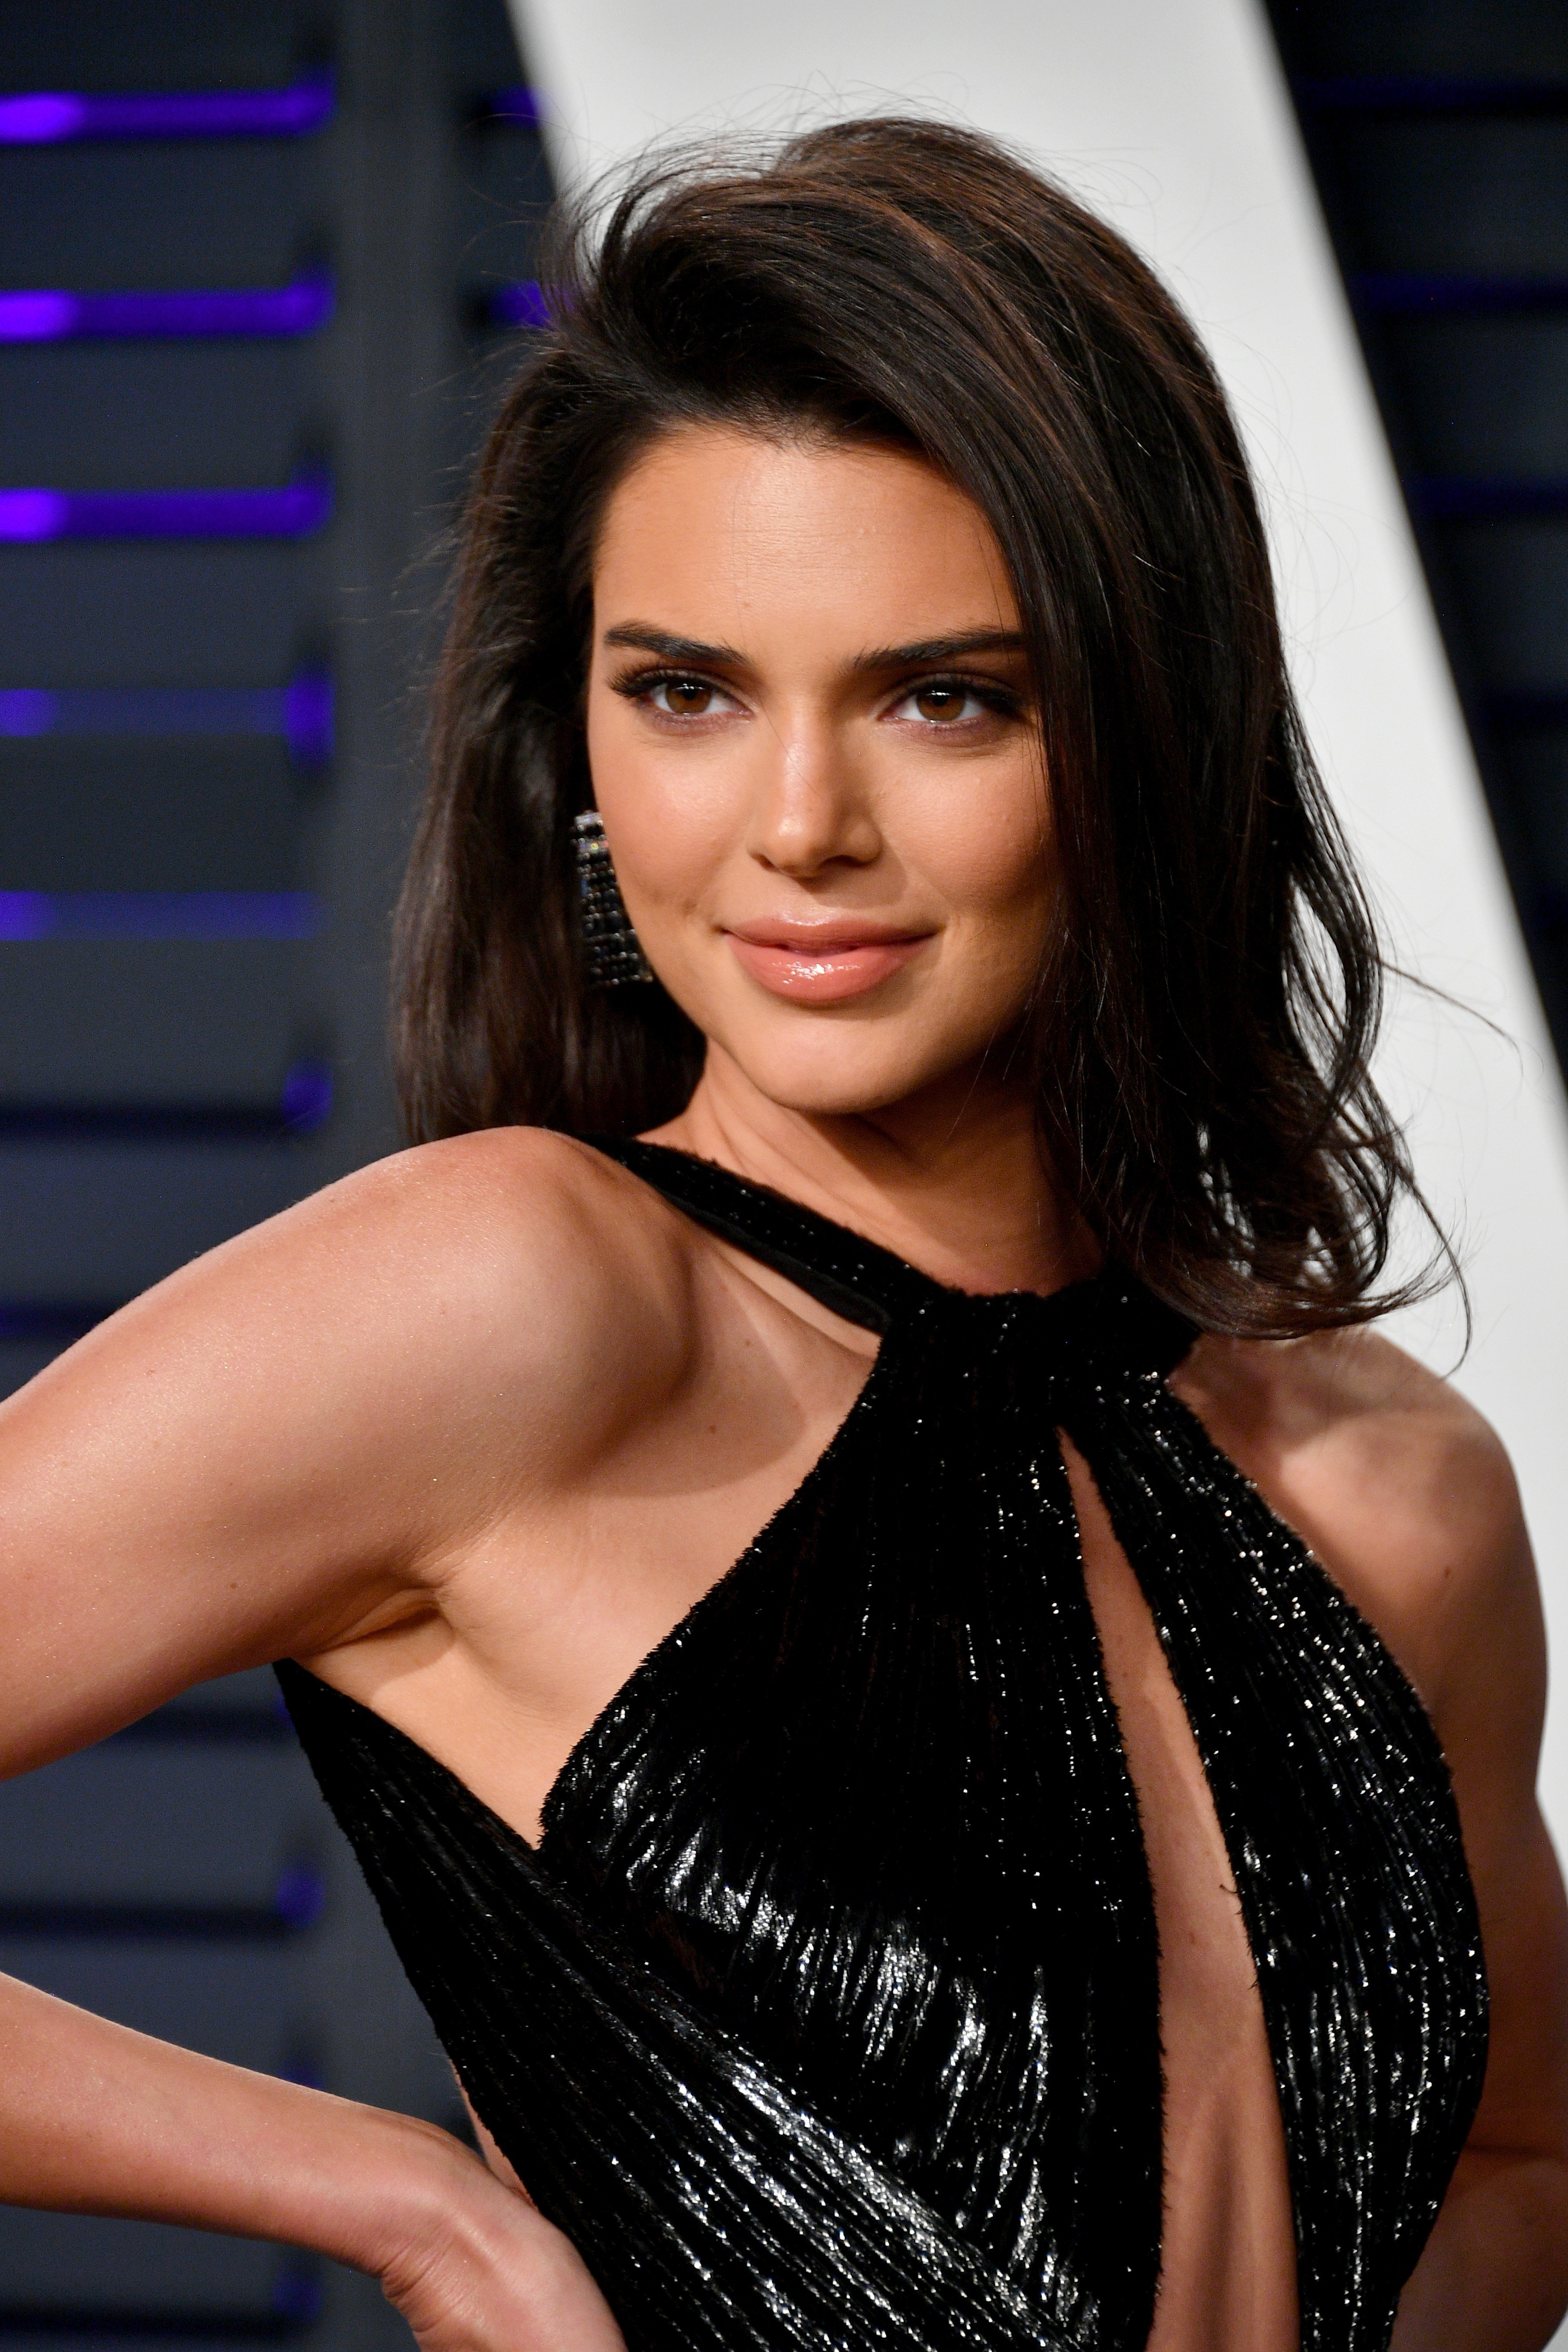 Kendall Jenner posing for the photographers at Vanity Fair's Academy Awards Afterparty | Photo: Getty Images